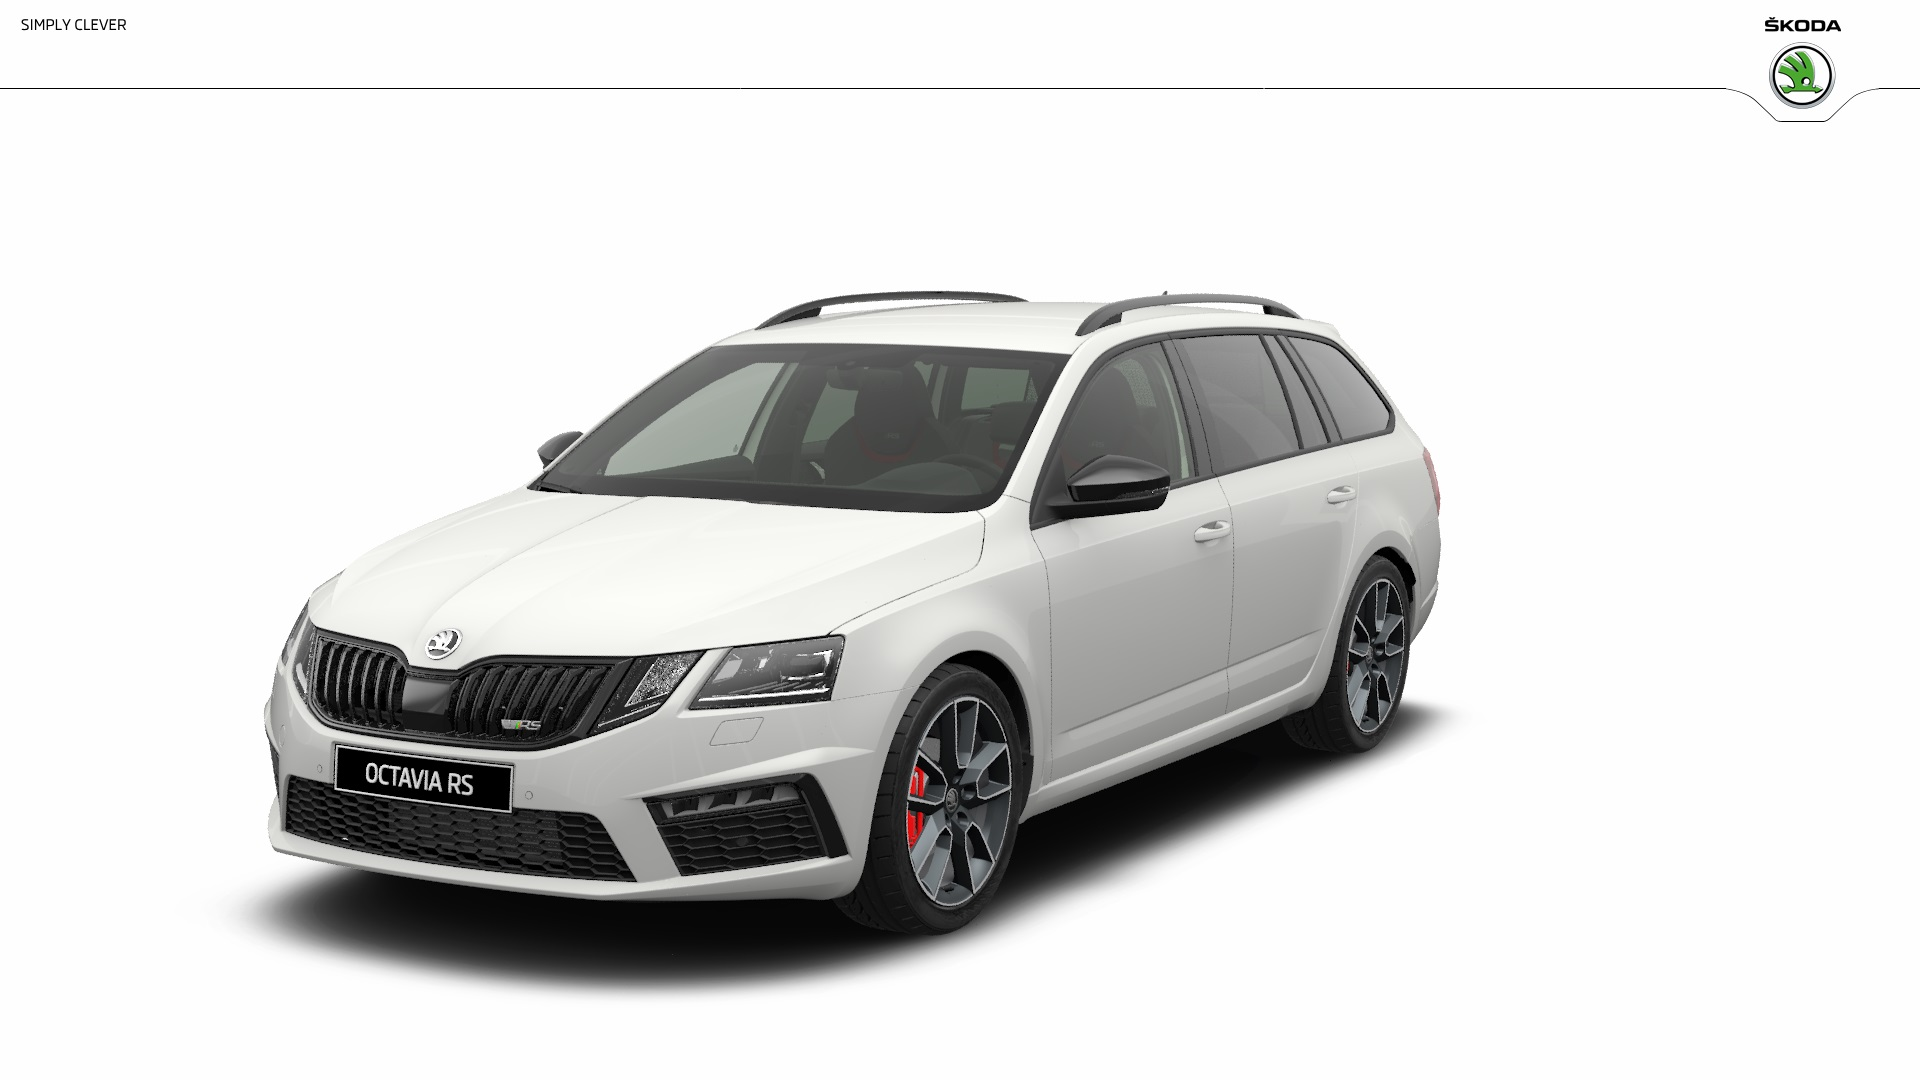 skoda octavia rs leasing j mf r pris p din n sta. Black Bedroom Furniture Sets. Home Design Ideas